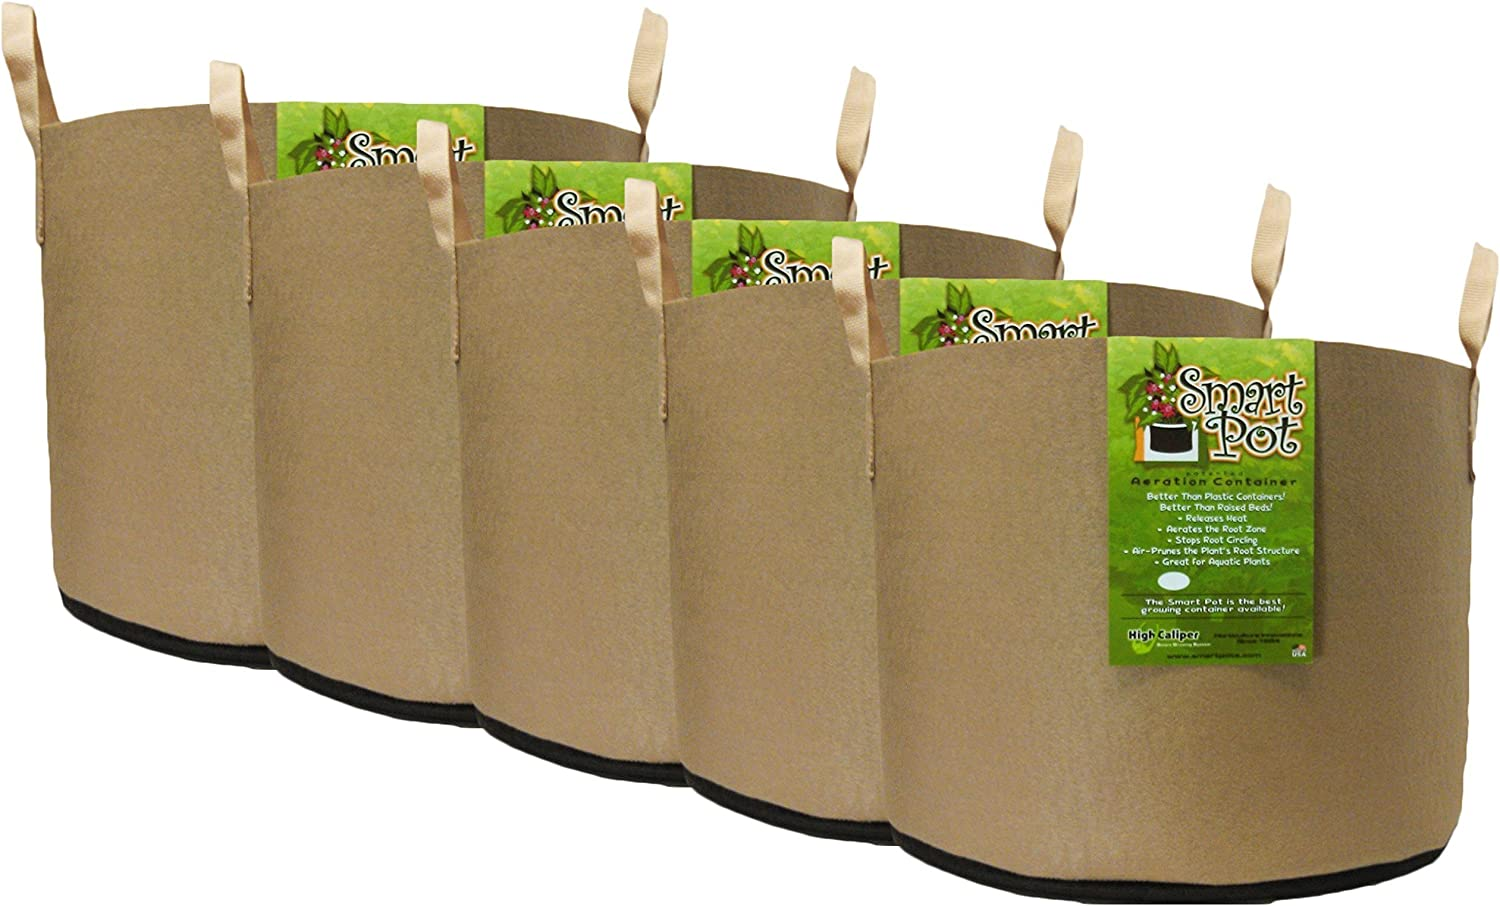 Smart Pot Soft-Sided Fabric Garden Plant Container Aeration Planter Pots Tan with Strap Handles, 15 gallon, 5 Pack